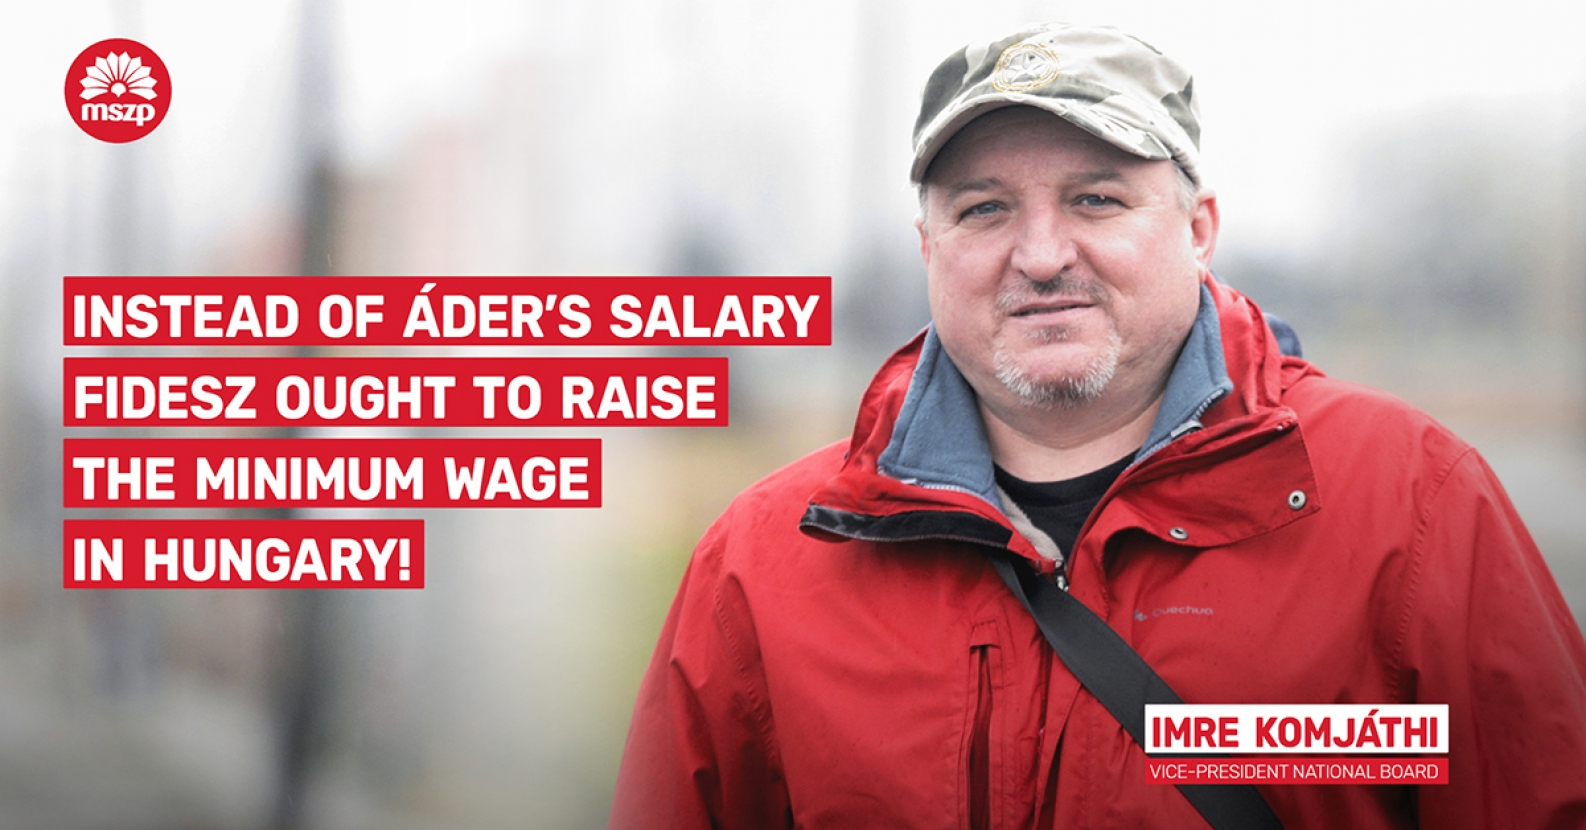 For Fidesz, Raising Minimum Wage Not As Important As Raising Áder's Salary